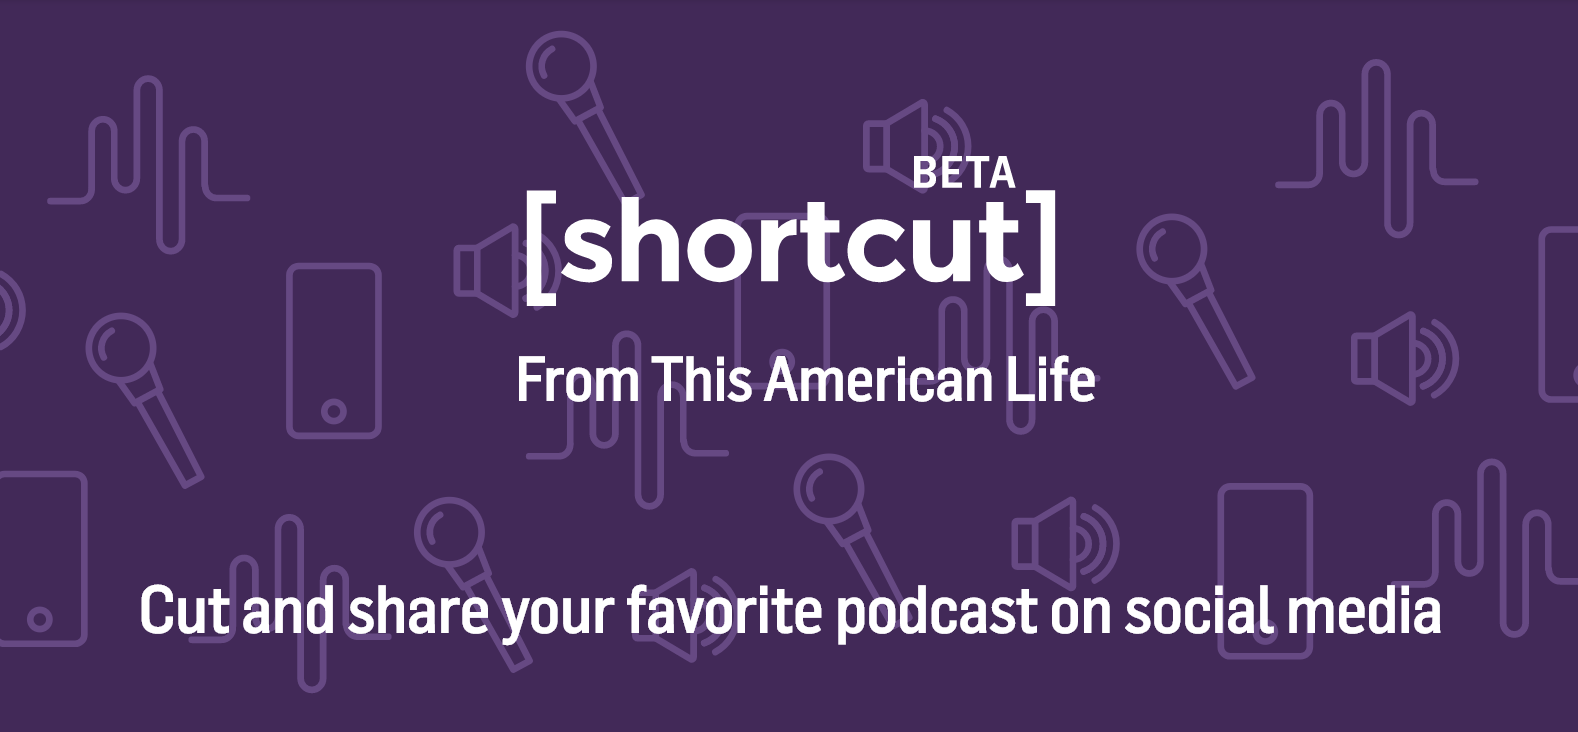 hey podcast creators shortcut is now available for any show to use